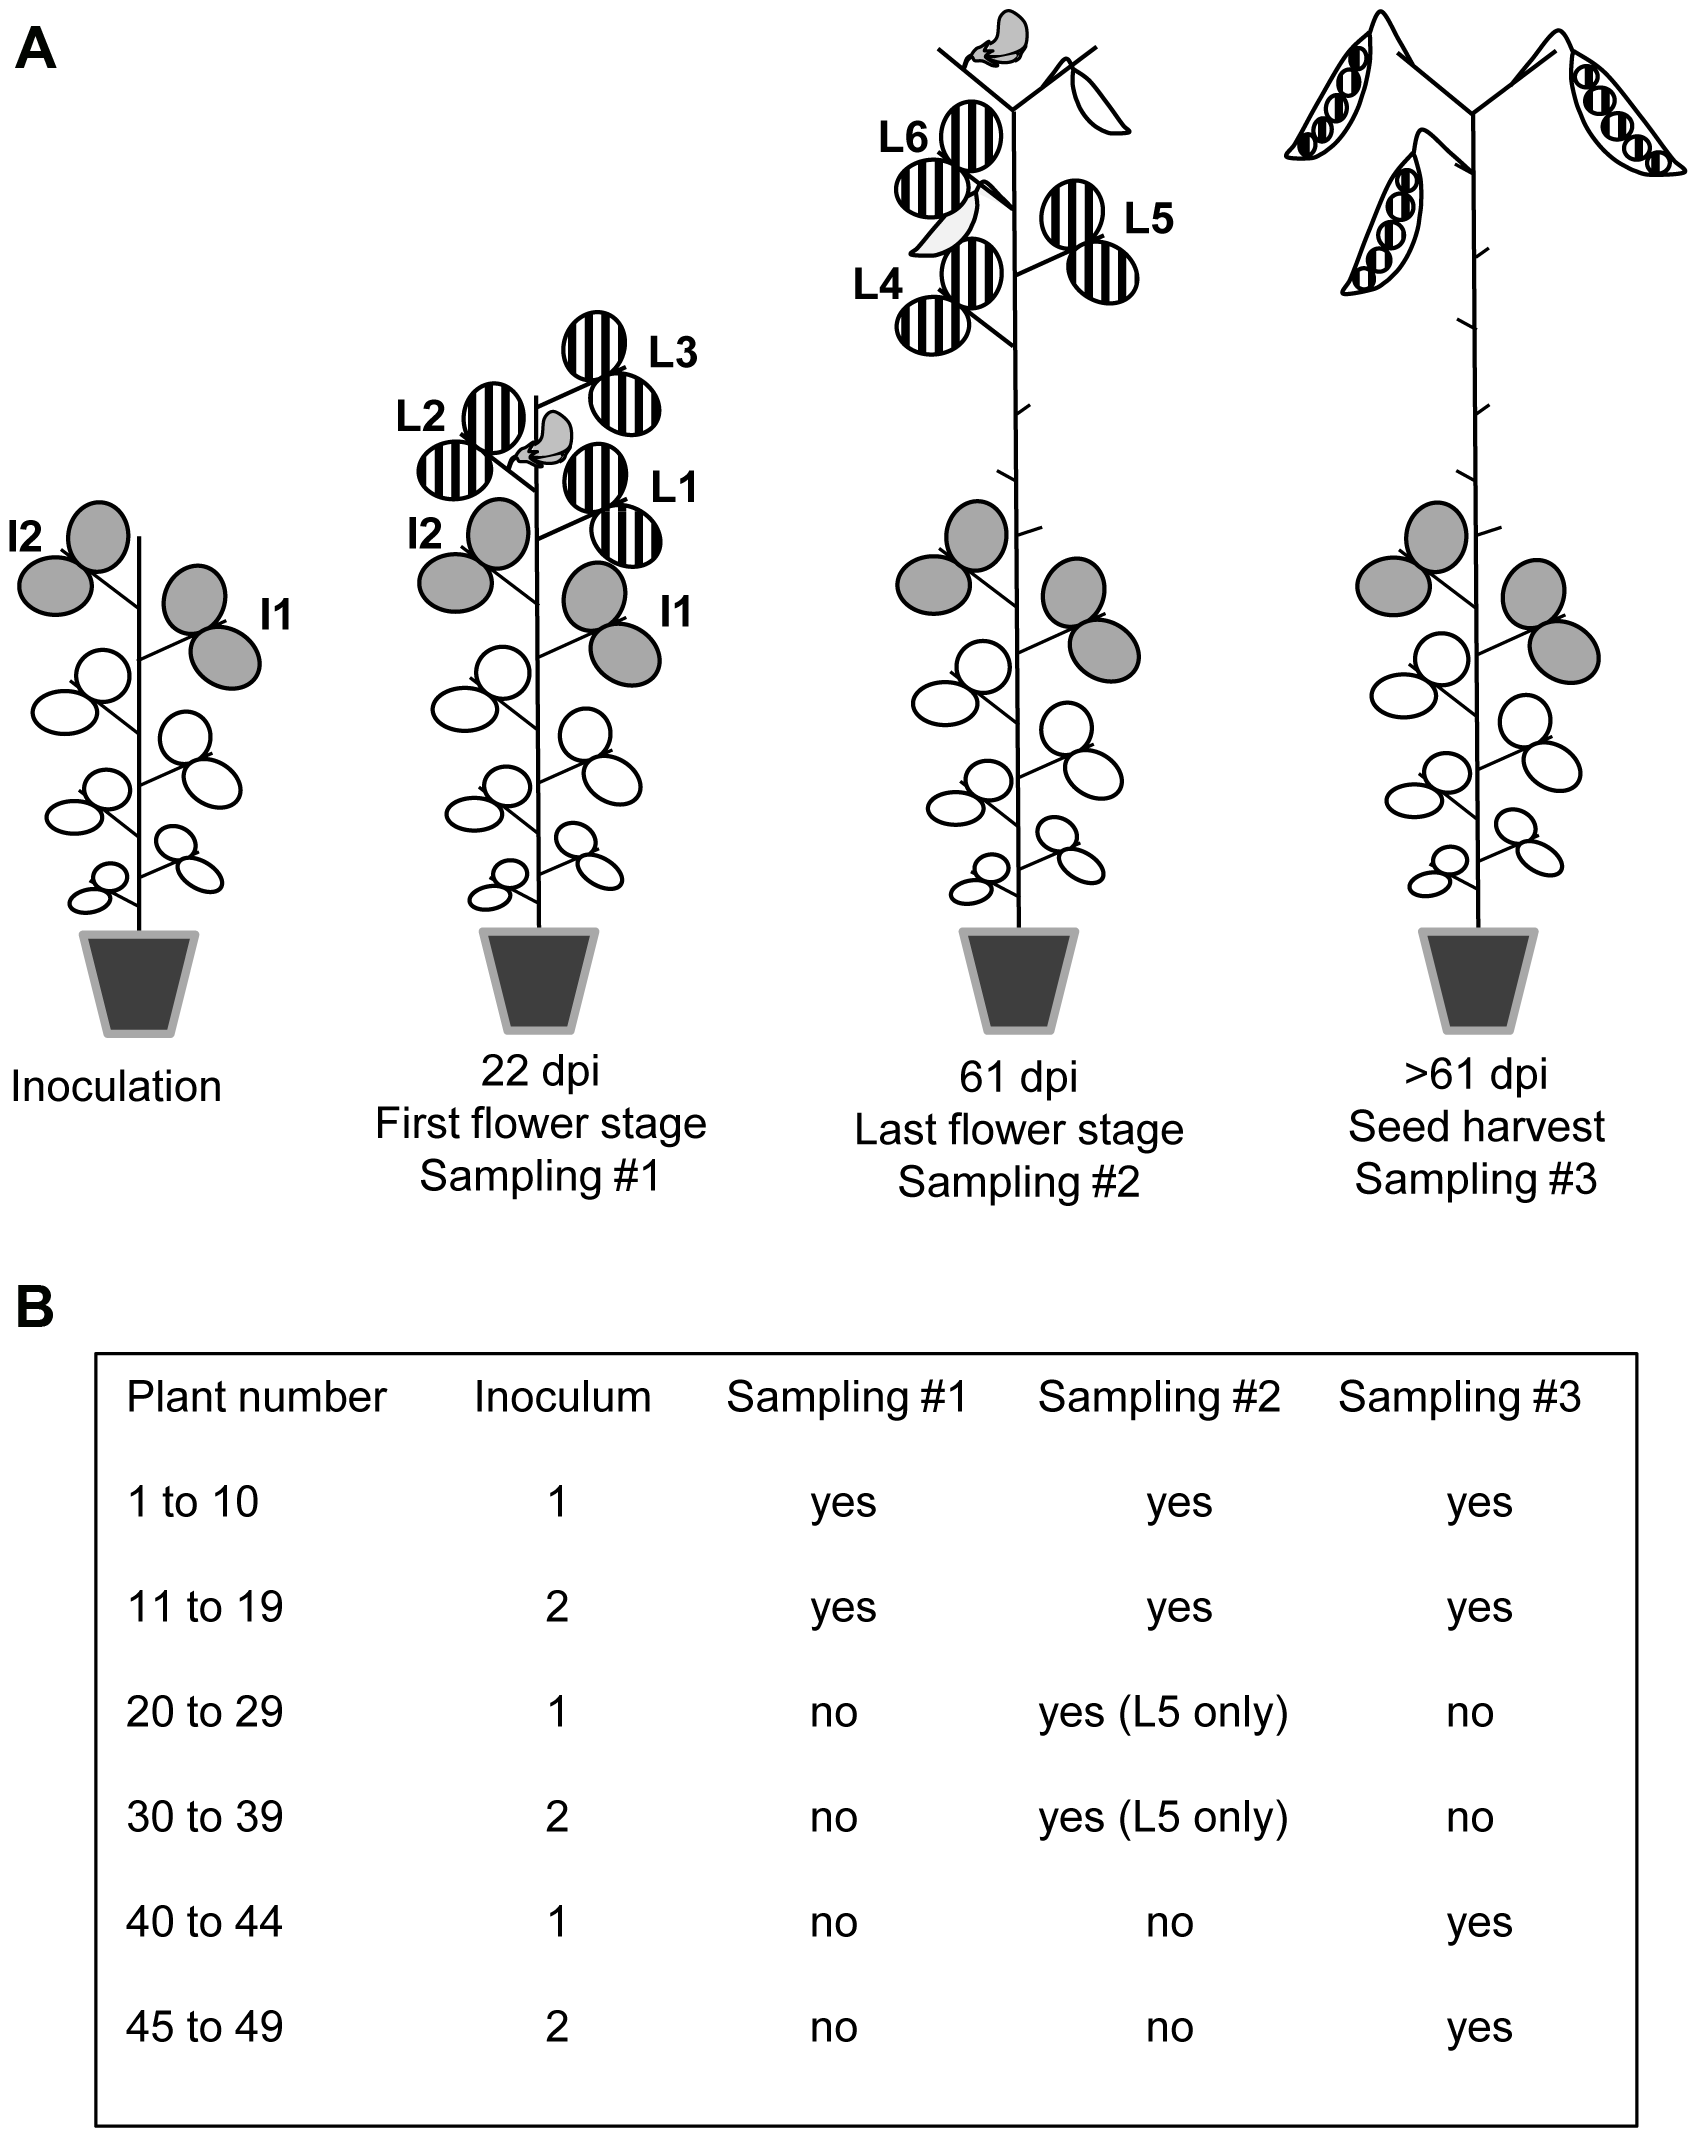 Virus sampling design for pea plants inoculated with PSbMV.